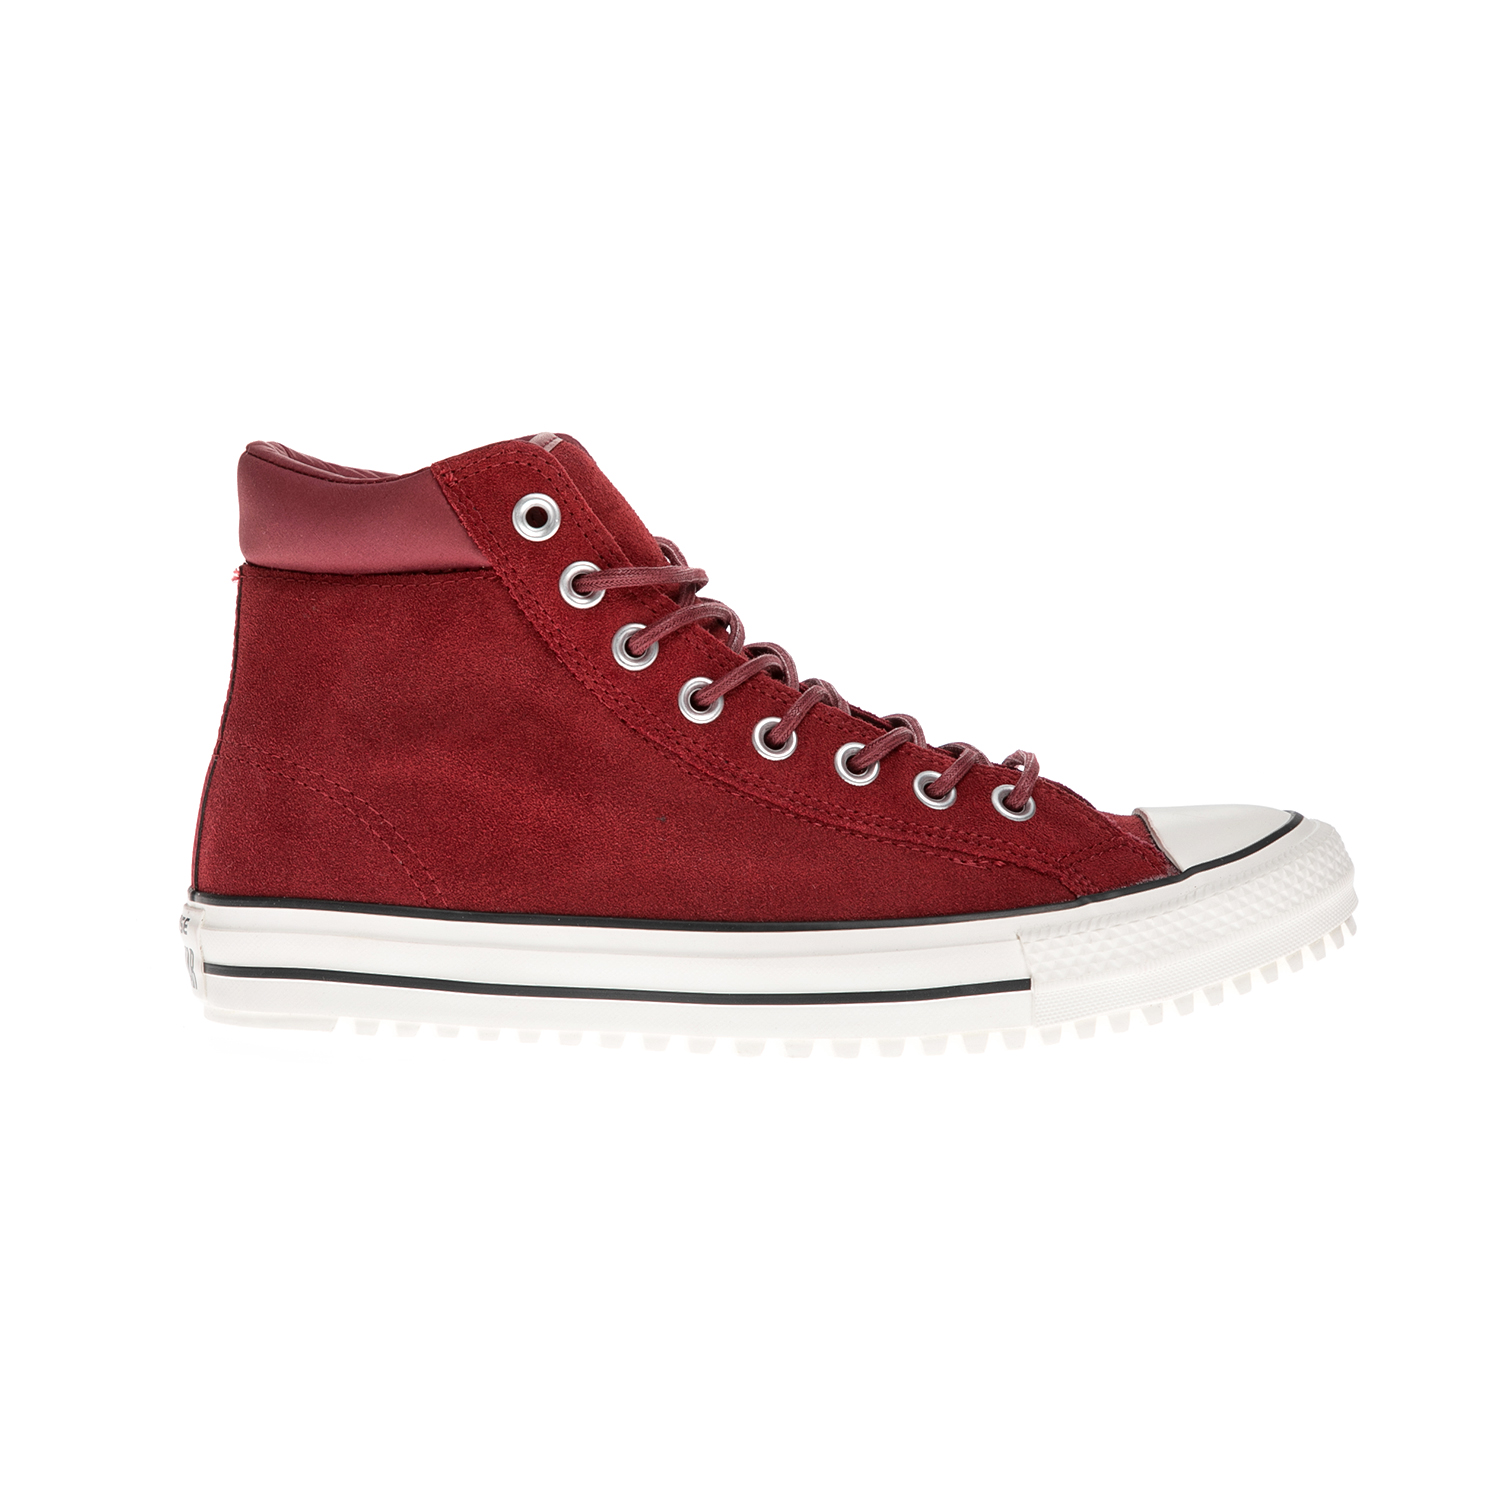 CONVERSE – Unisex παπούτσια Chuck Taylor All Star Converse κόκκινα